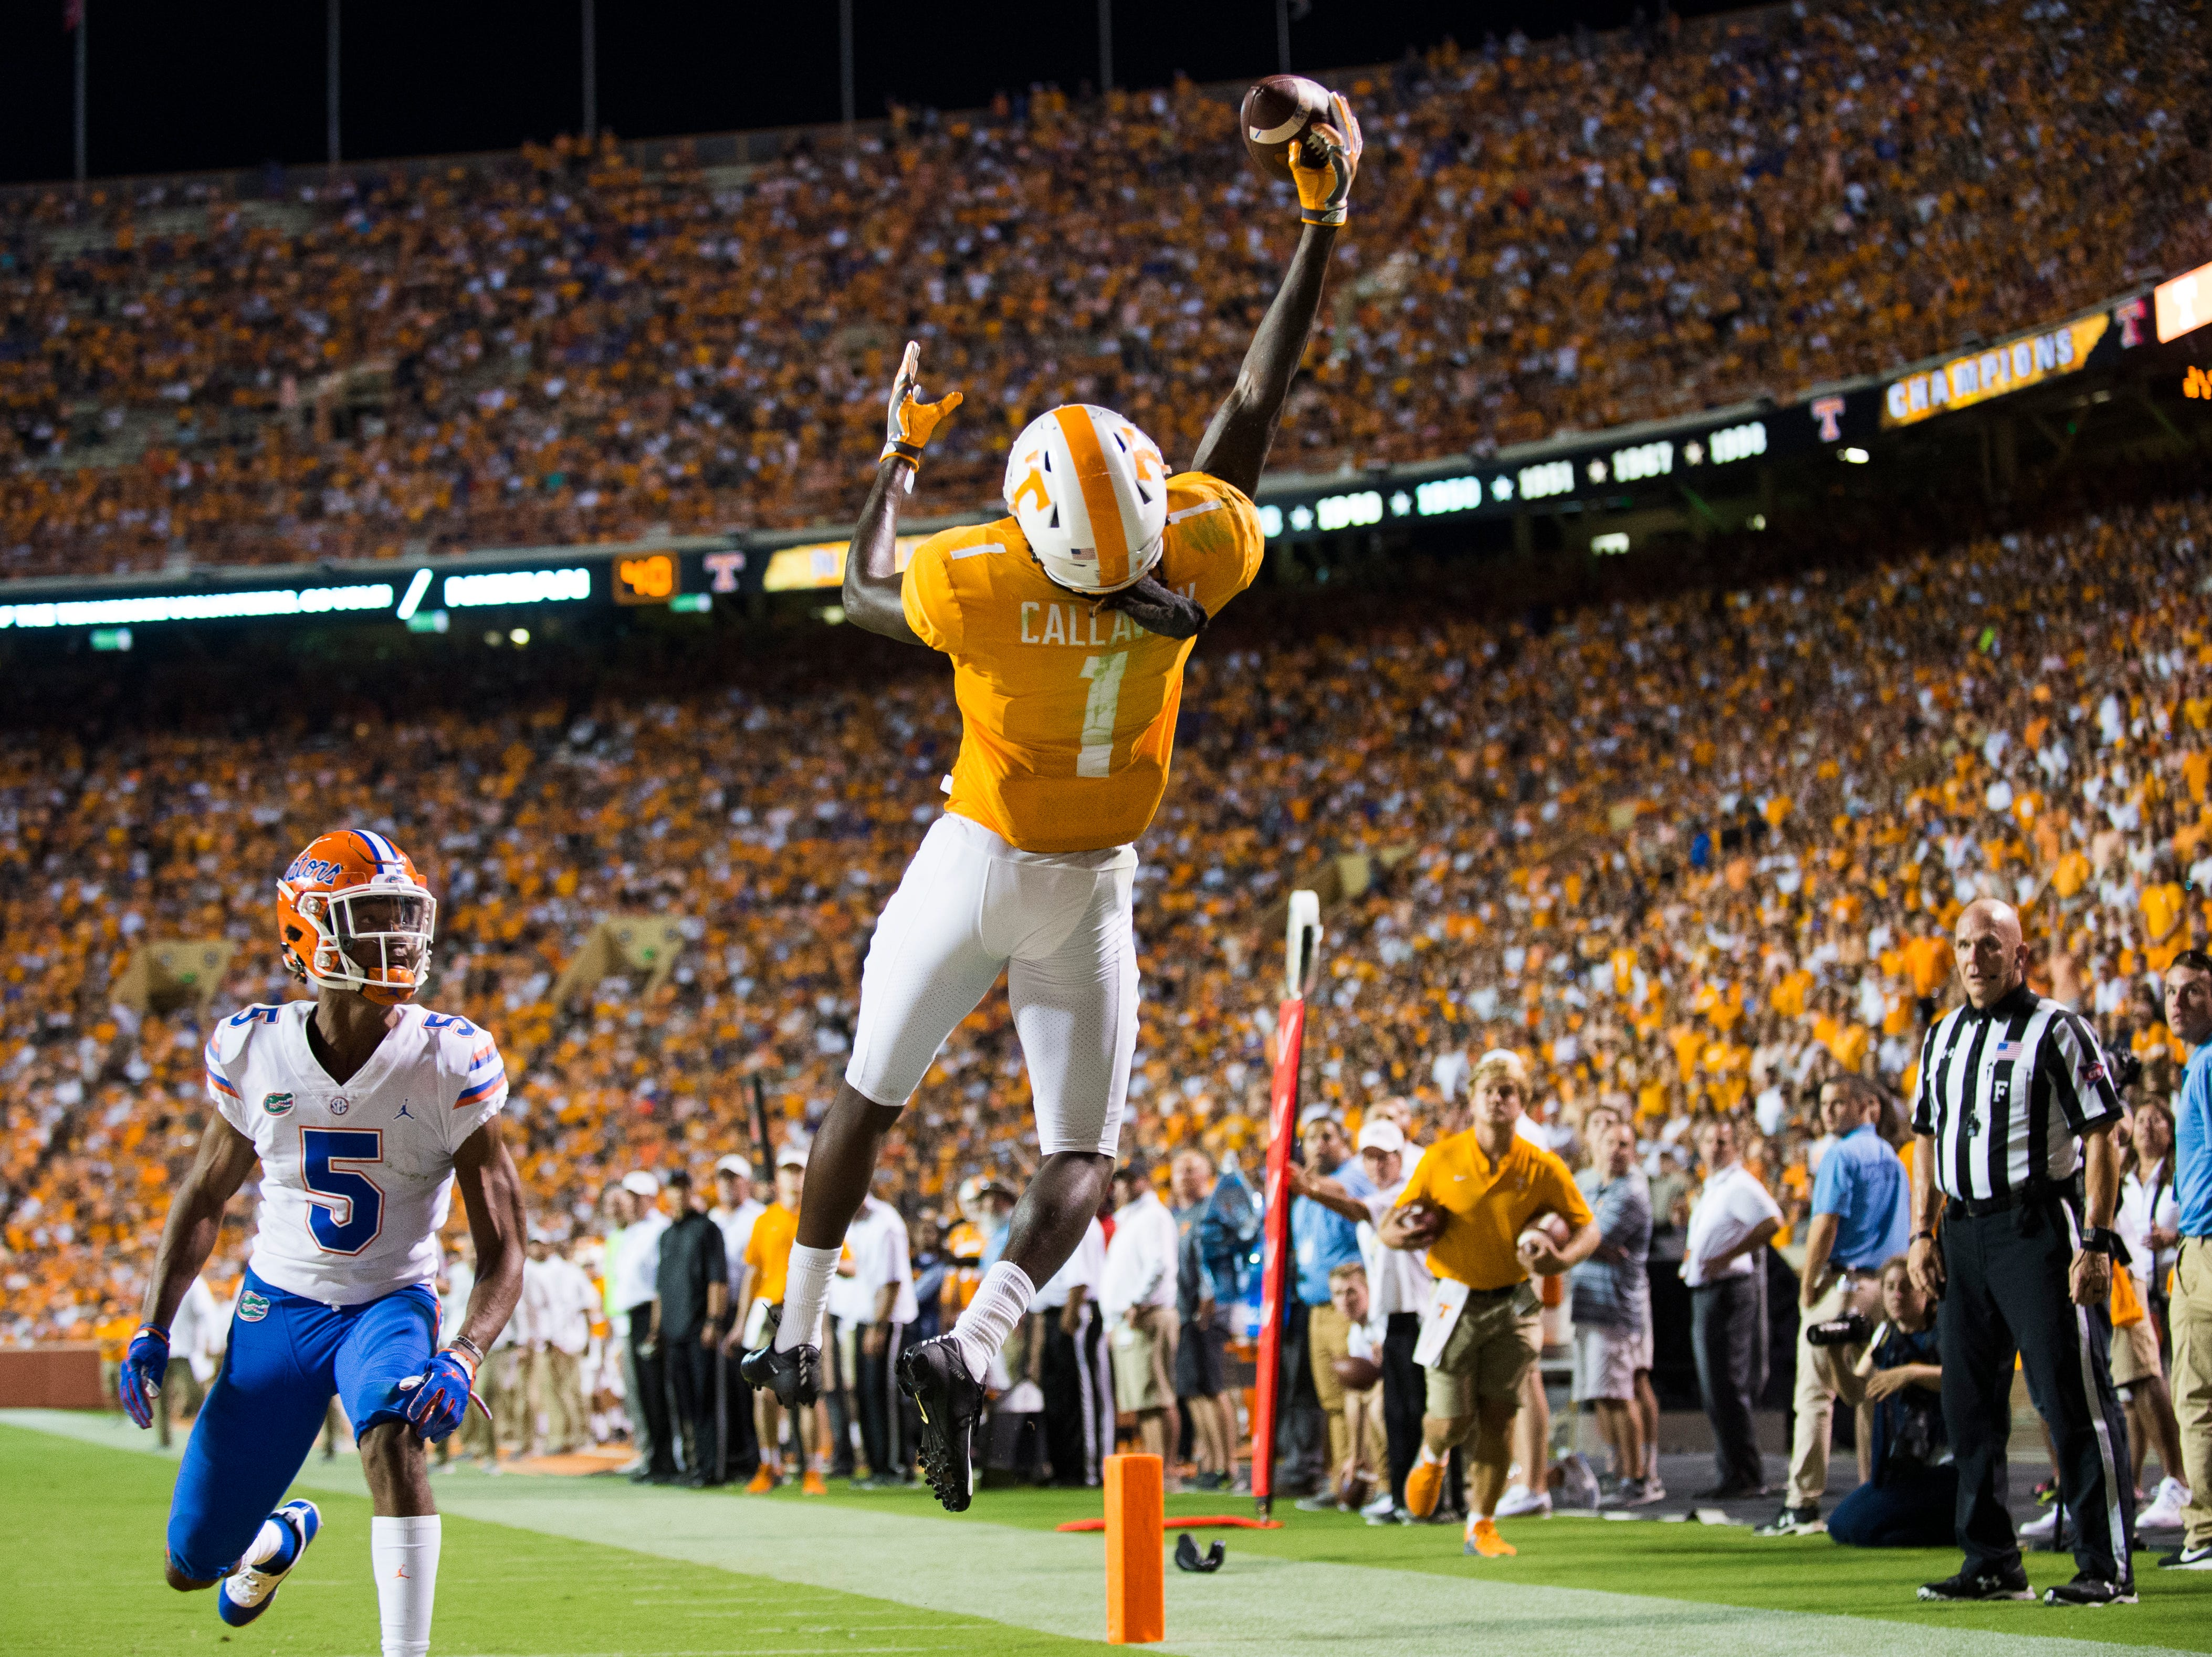 Tennessee wide receiver Marquez Callaway (1) reaches for in the end zone but is called incomplete during a game between Tennessee and Florida at Neyland Stadium in Knoxville, Tennessee on Saturday, September 22, 2018.